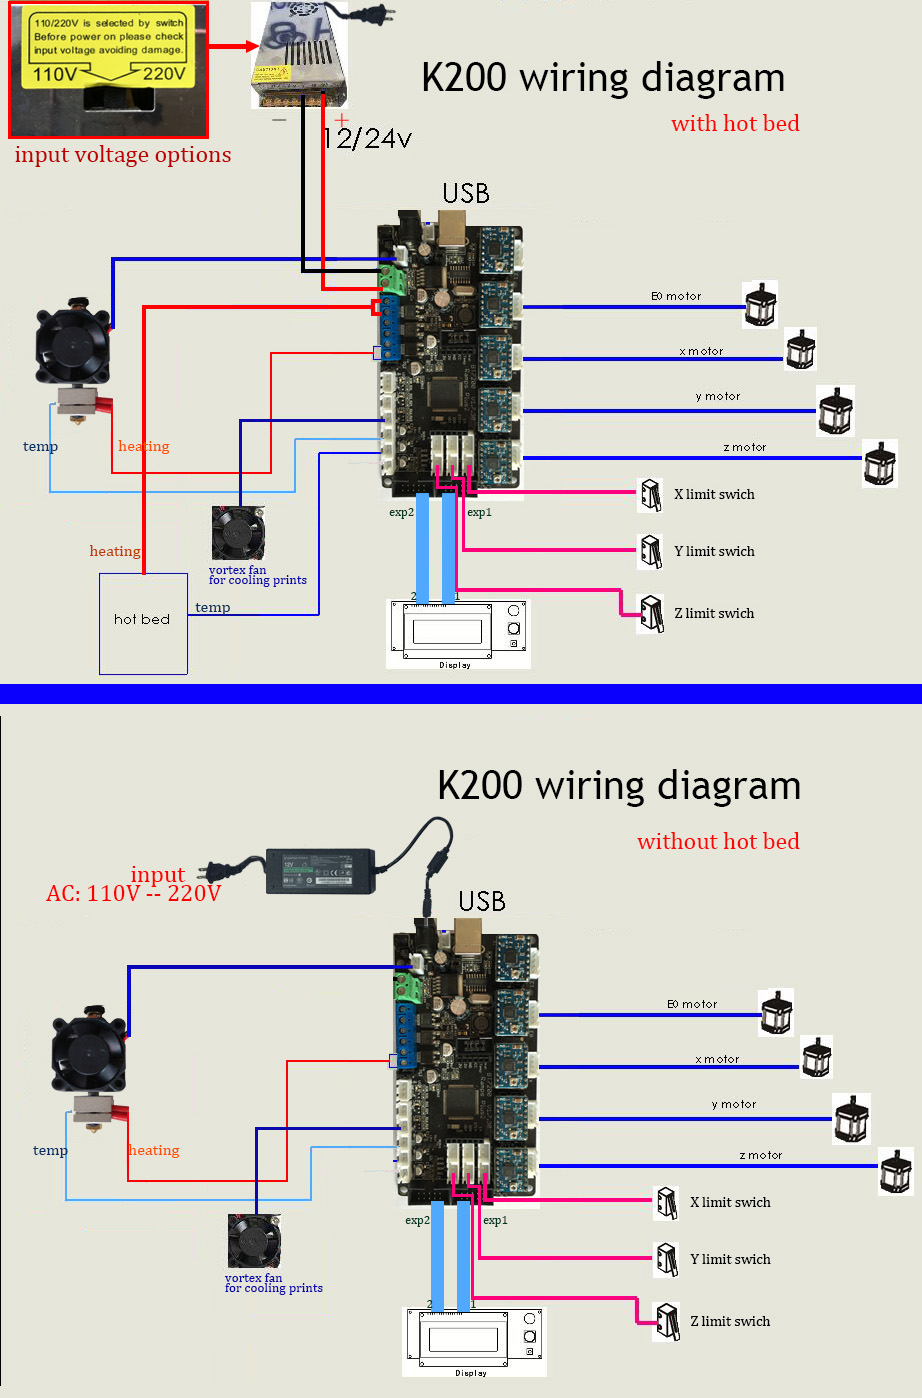 3 phase wiring colors 3 image wiring diagram 480v plug wiring diagram 480v printable wiring diagram on 3 phase wiring colors